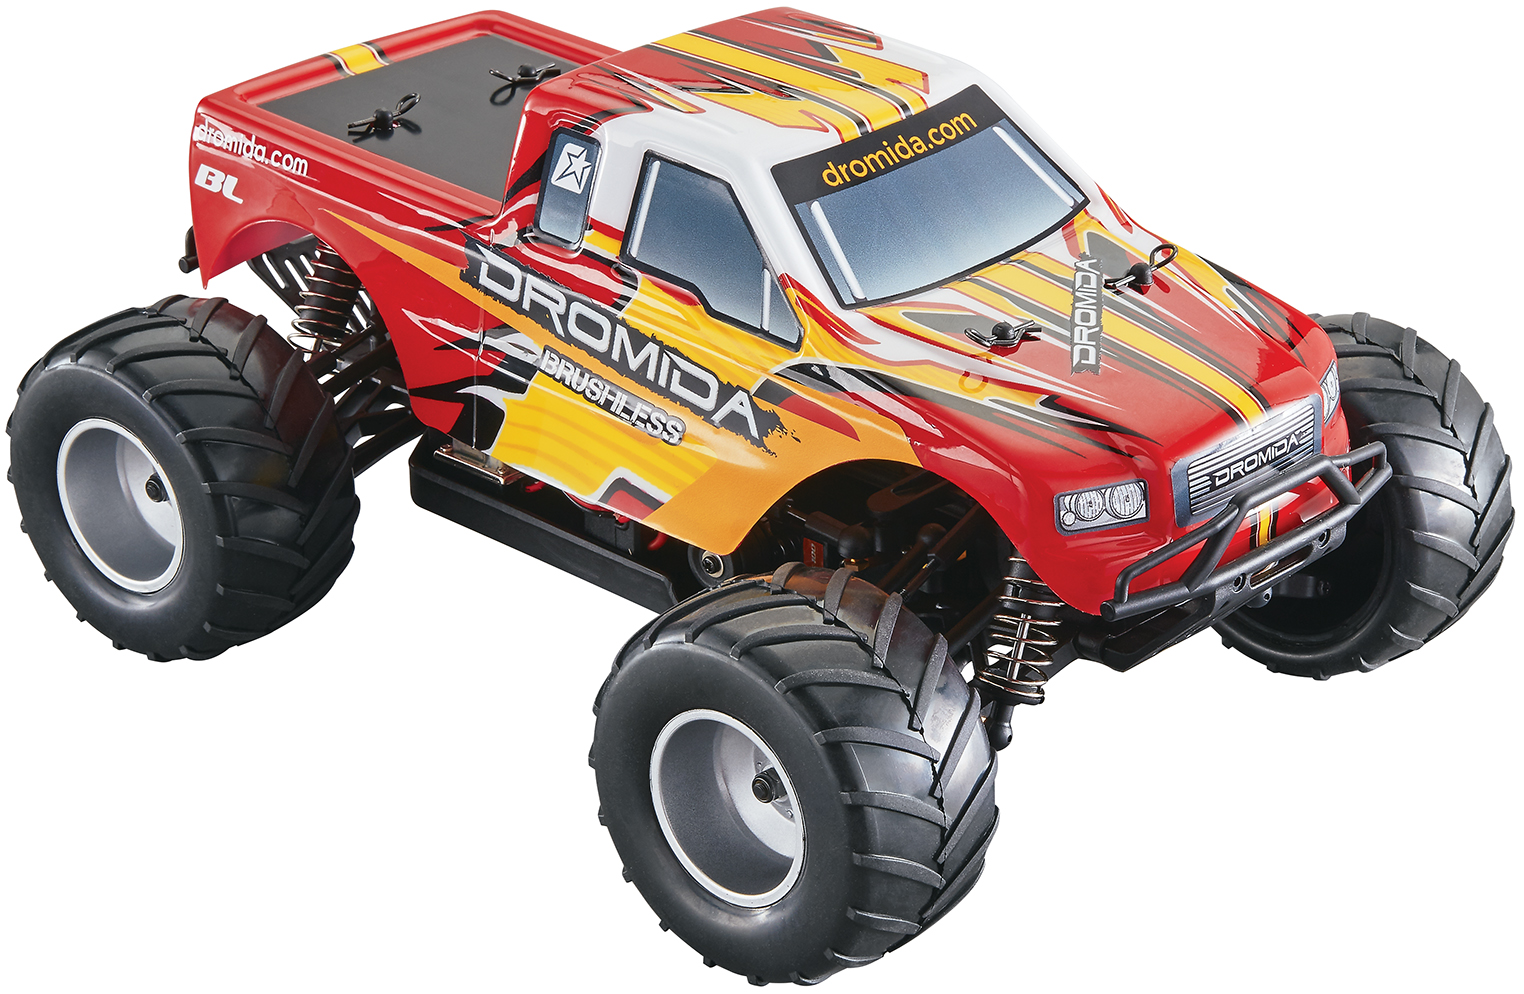 Dromida's 1/18-scale, Brushless-powered Monster Truck